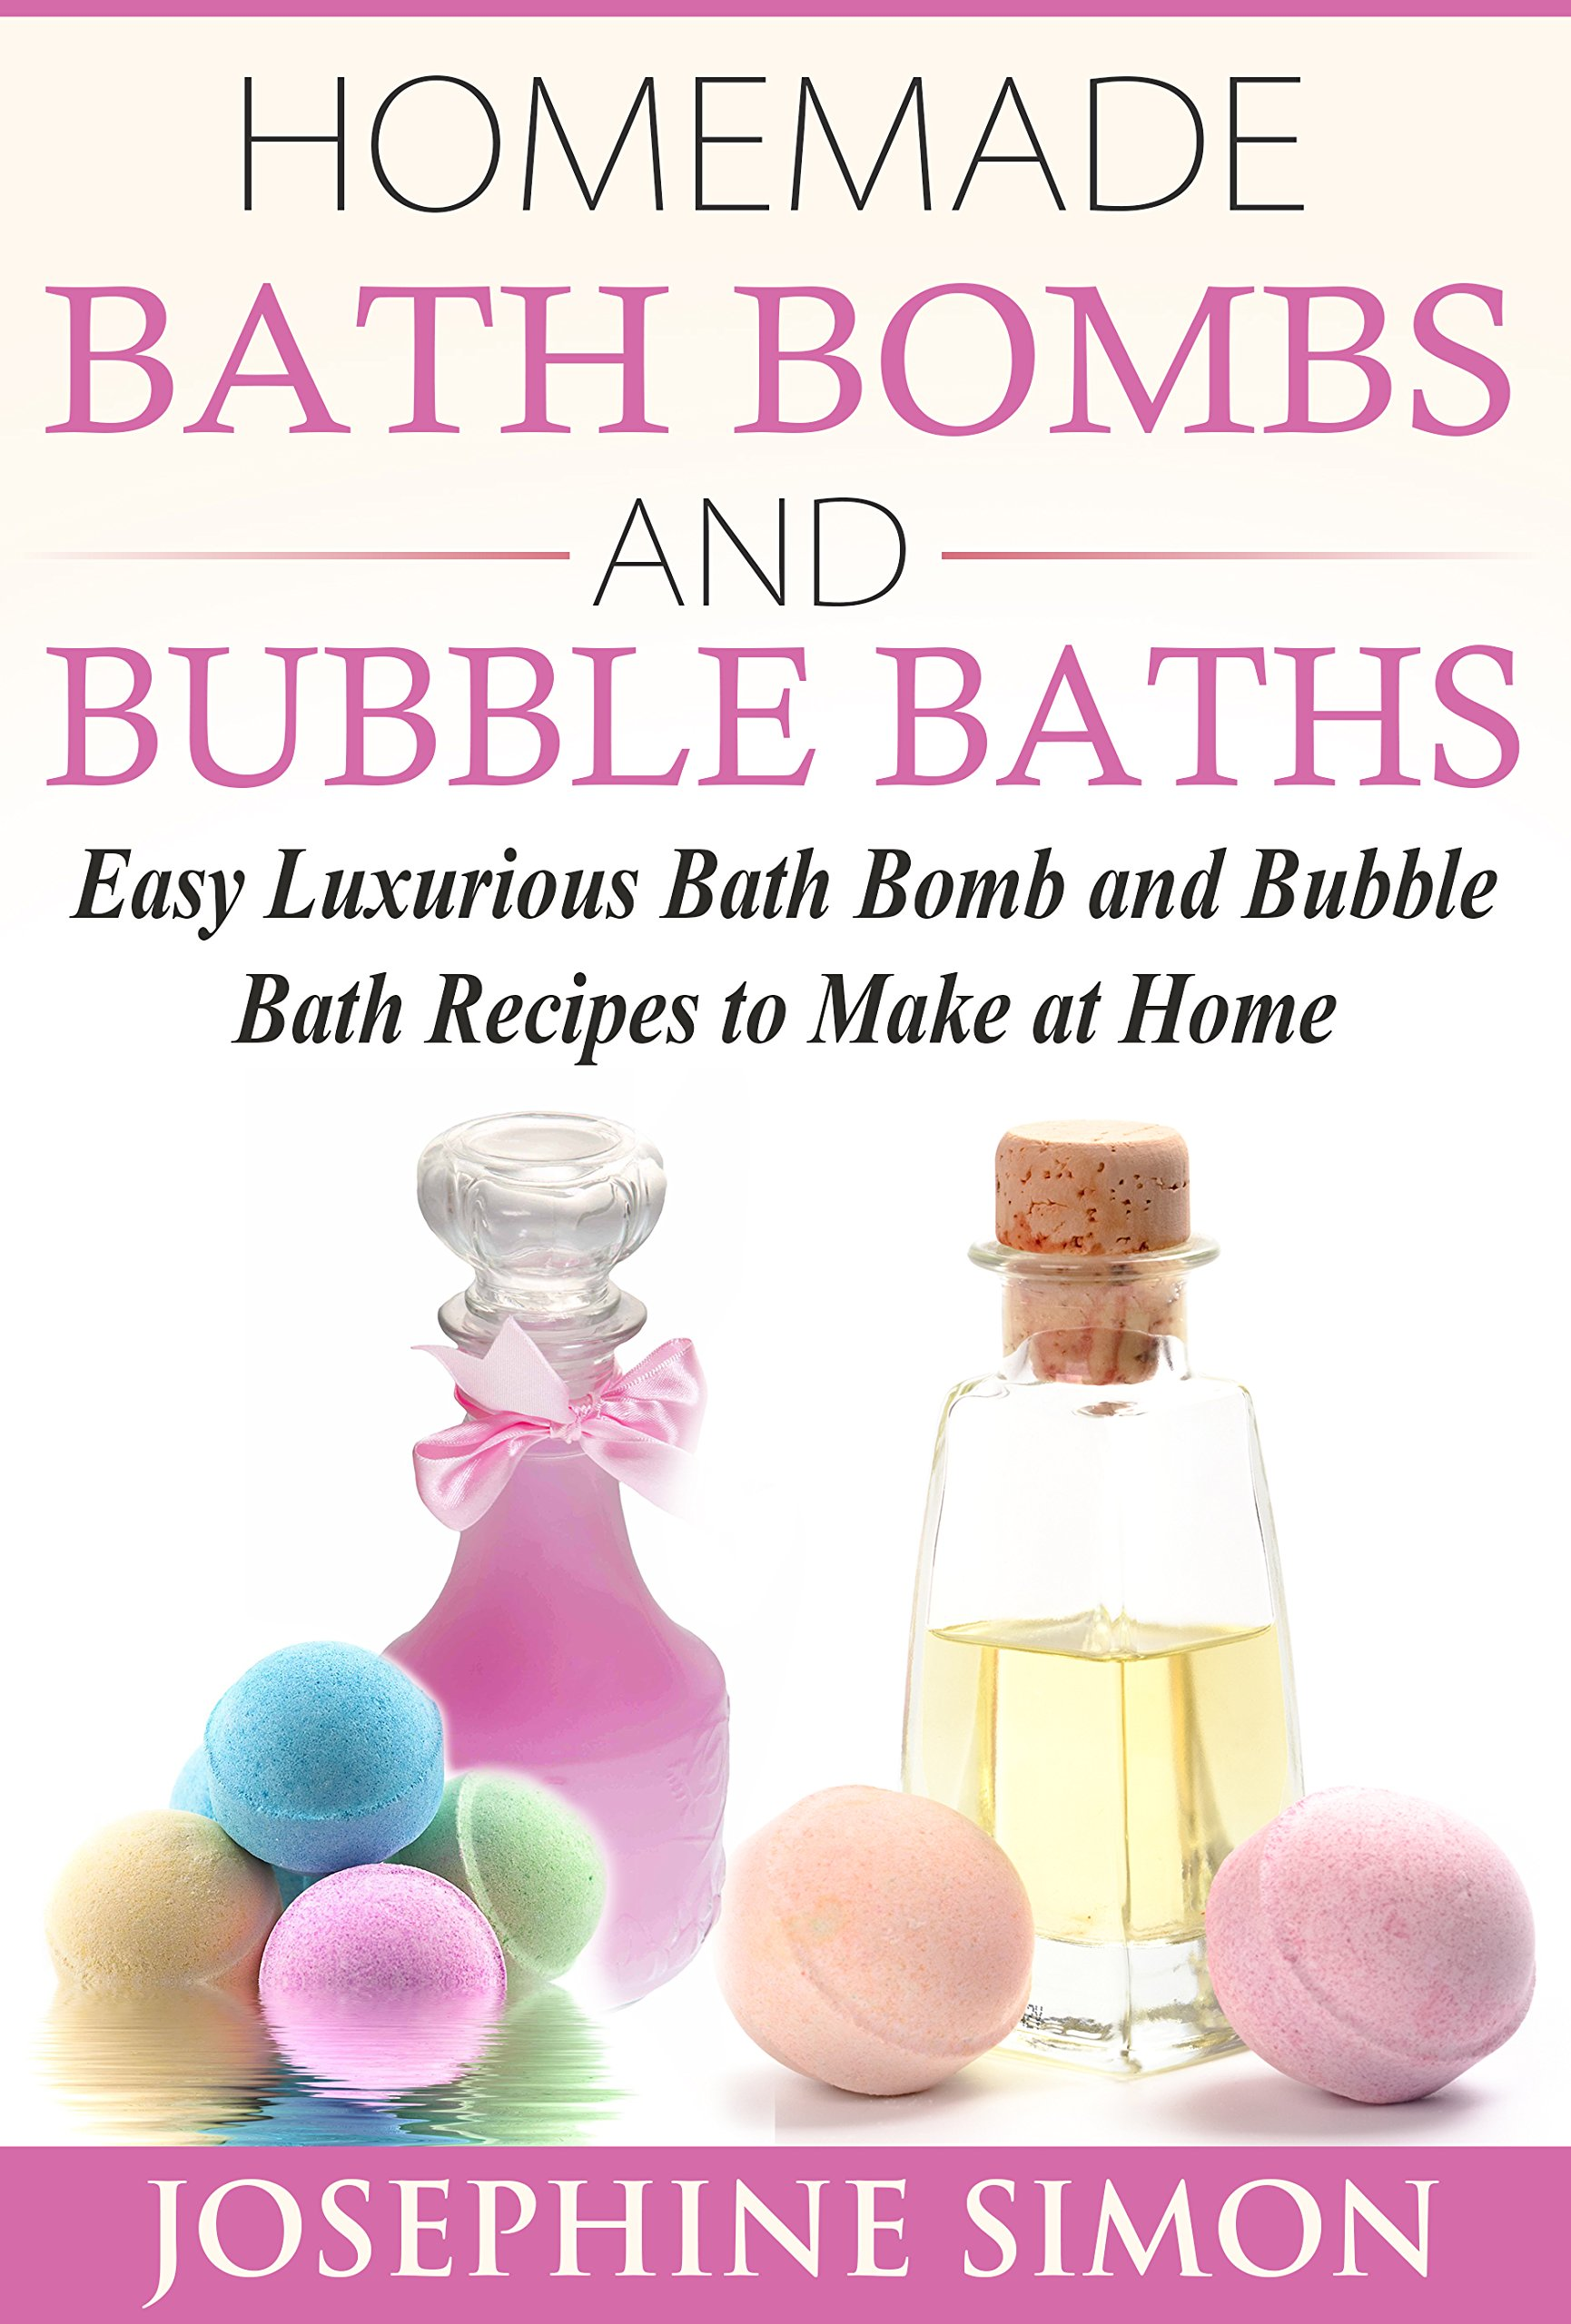 Download Homemade Bath Bombs and Bubble Baths: Easy Luxurious Bath Bomb and Bubble Bath Recipes to Make at Home (DIY Beauty Product...